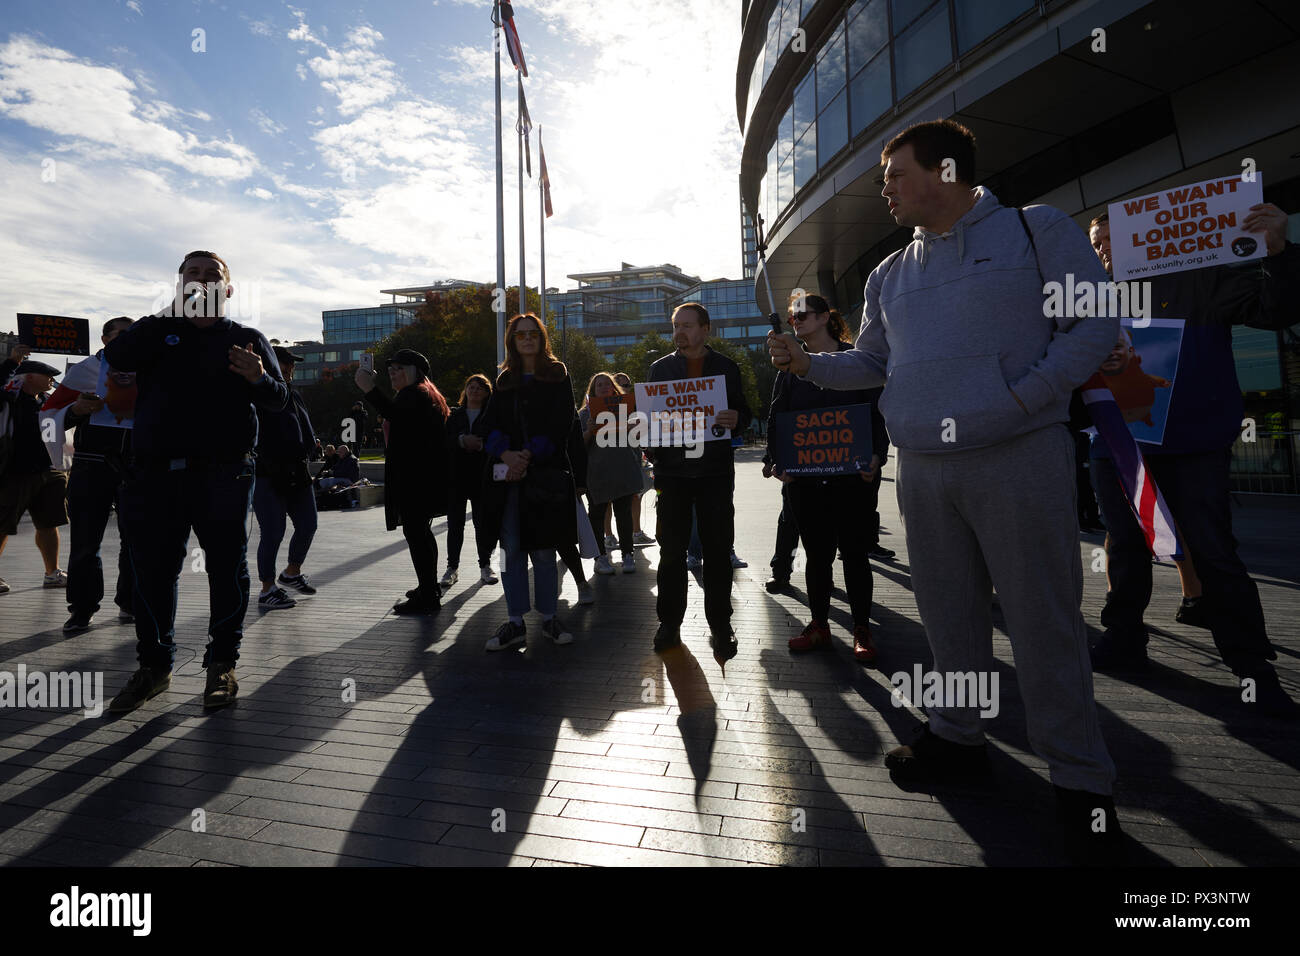 London, UK. 19th Oct 2018. Protestors against London Mayor Sadiq Khan demonstrate outside City Hall. Credit: Kevin J. Frost/Alamy Live News - Stock Image